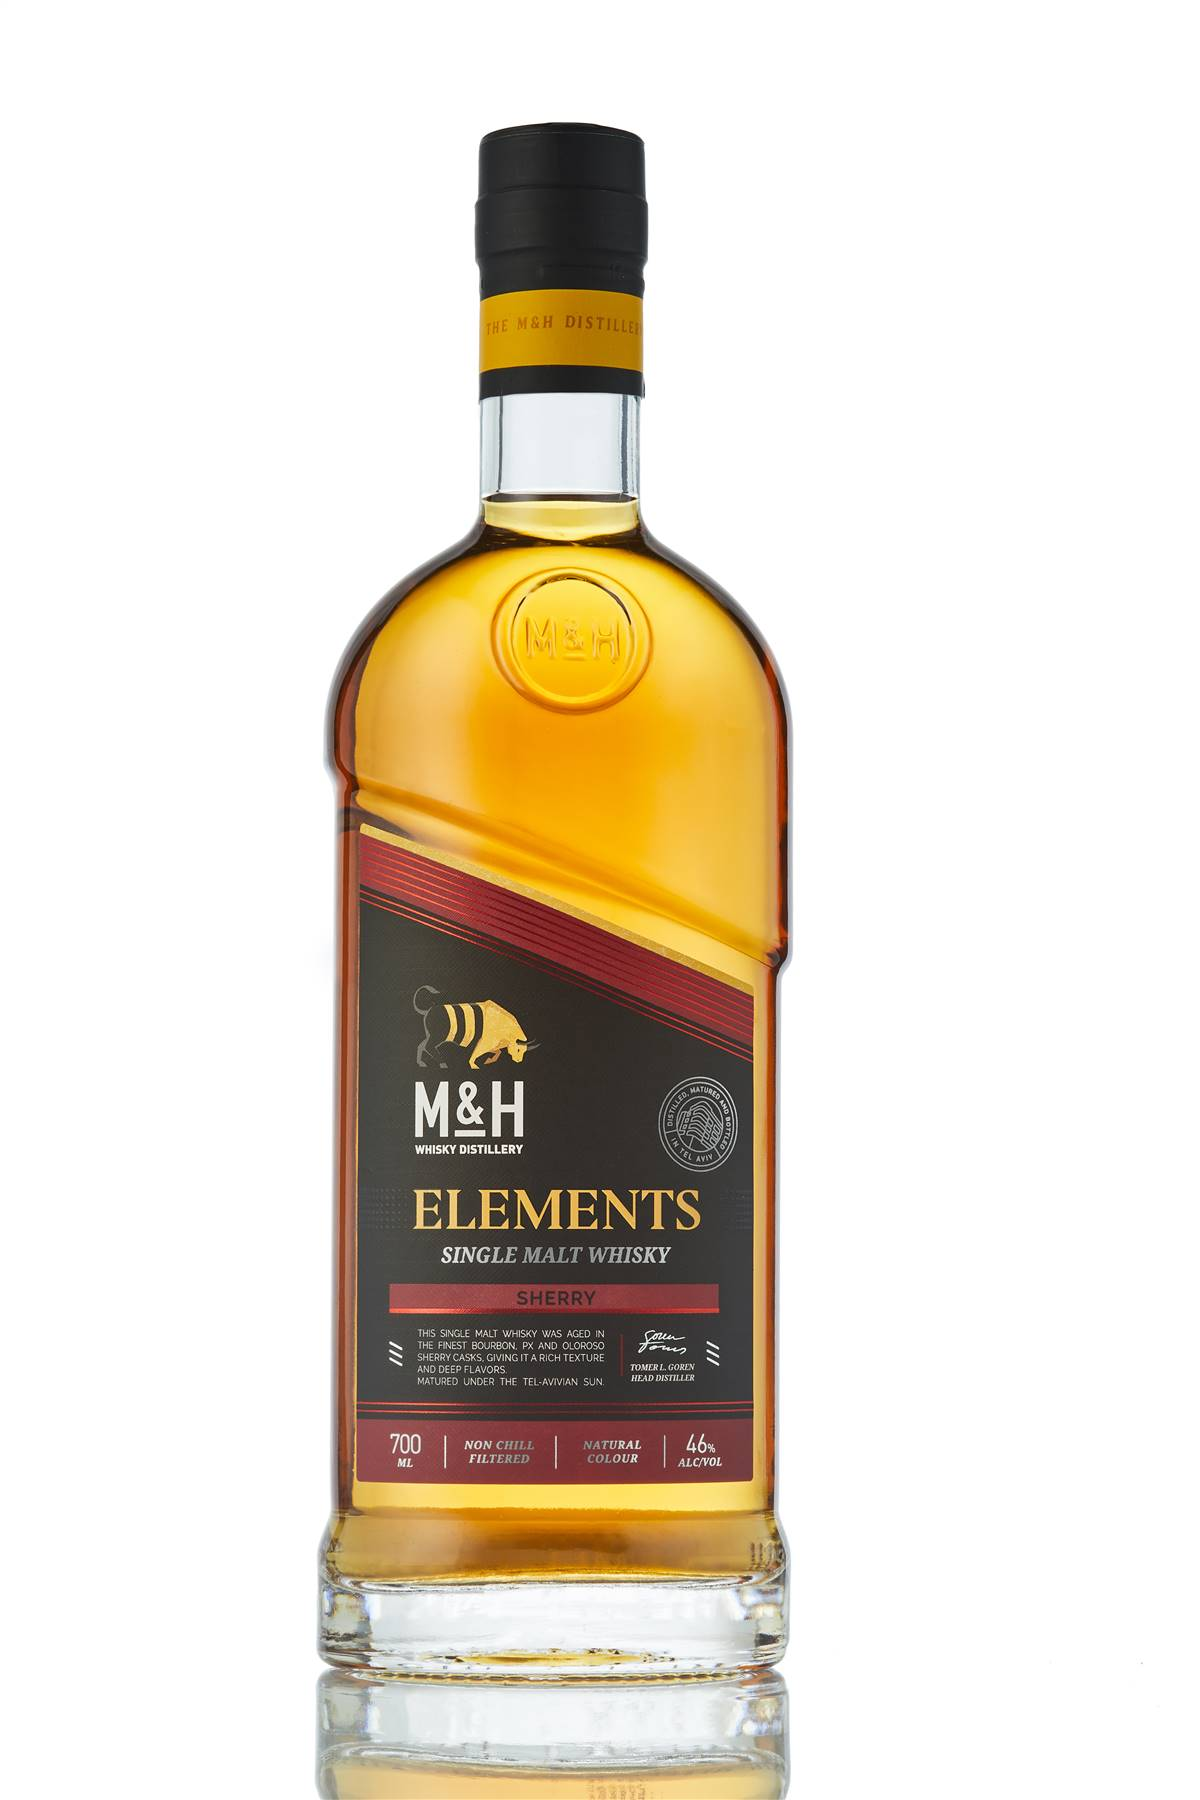 M&H Elements Sherry